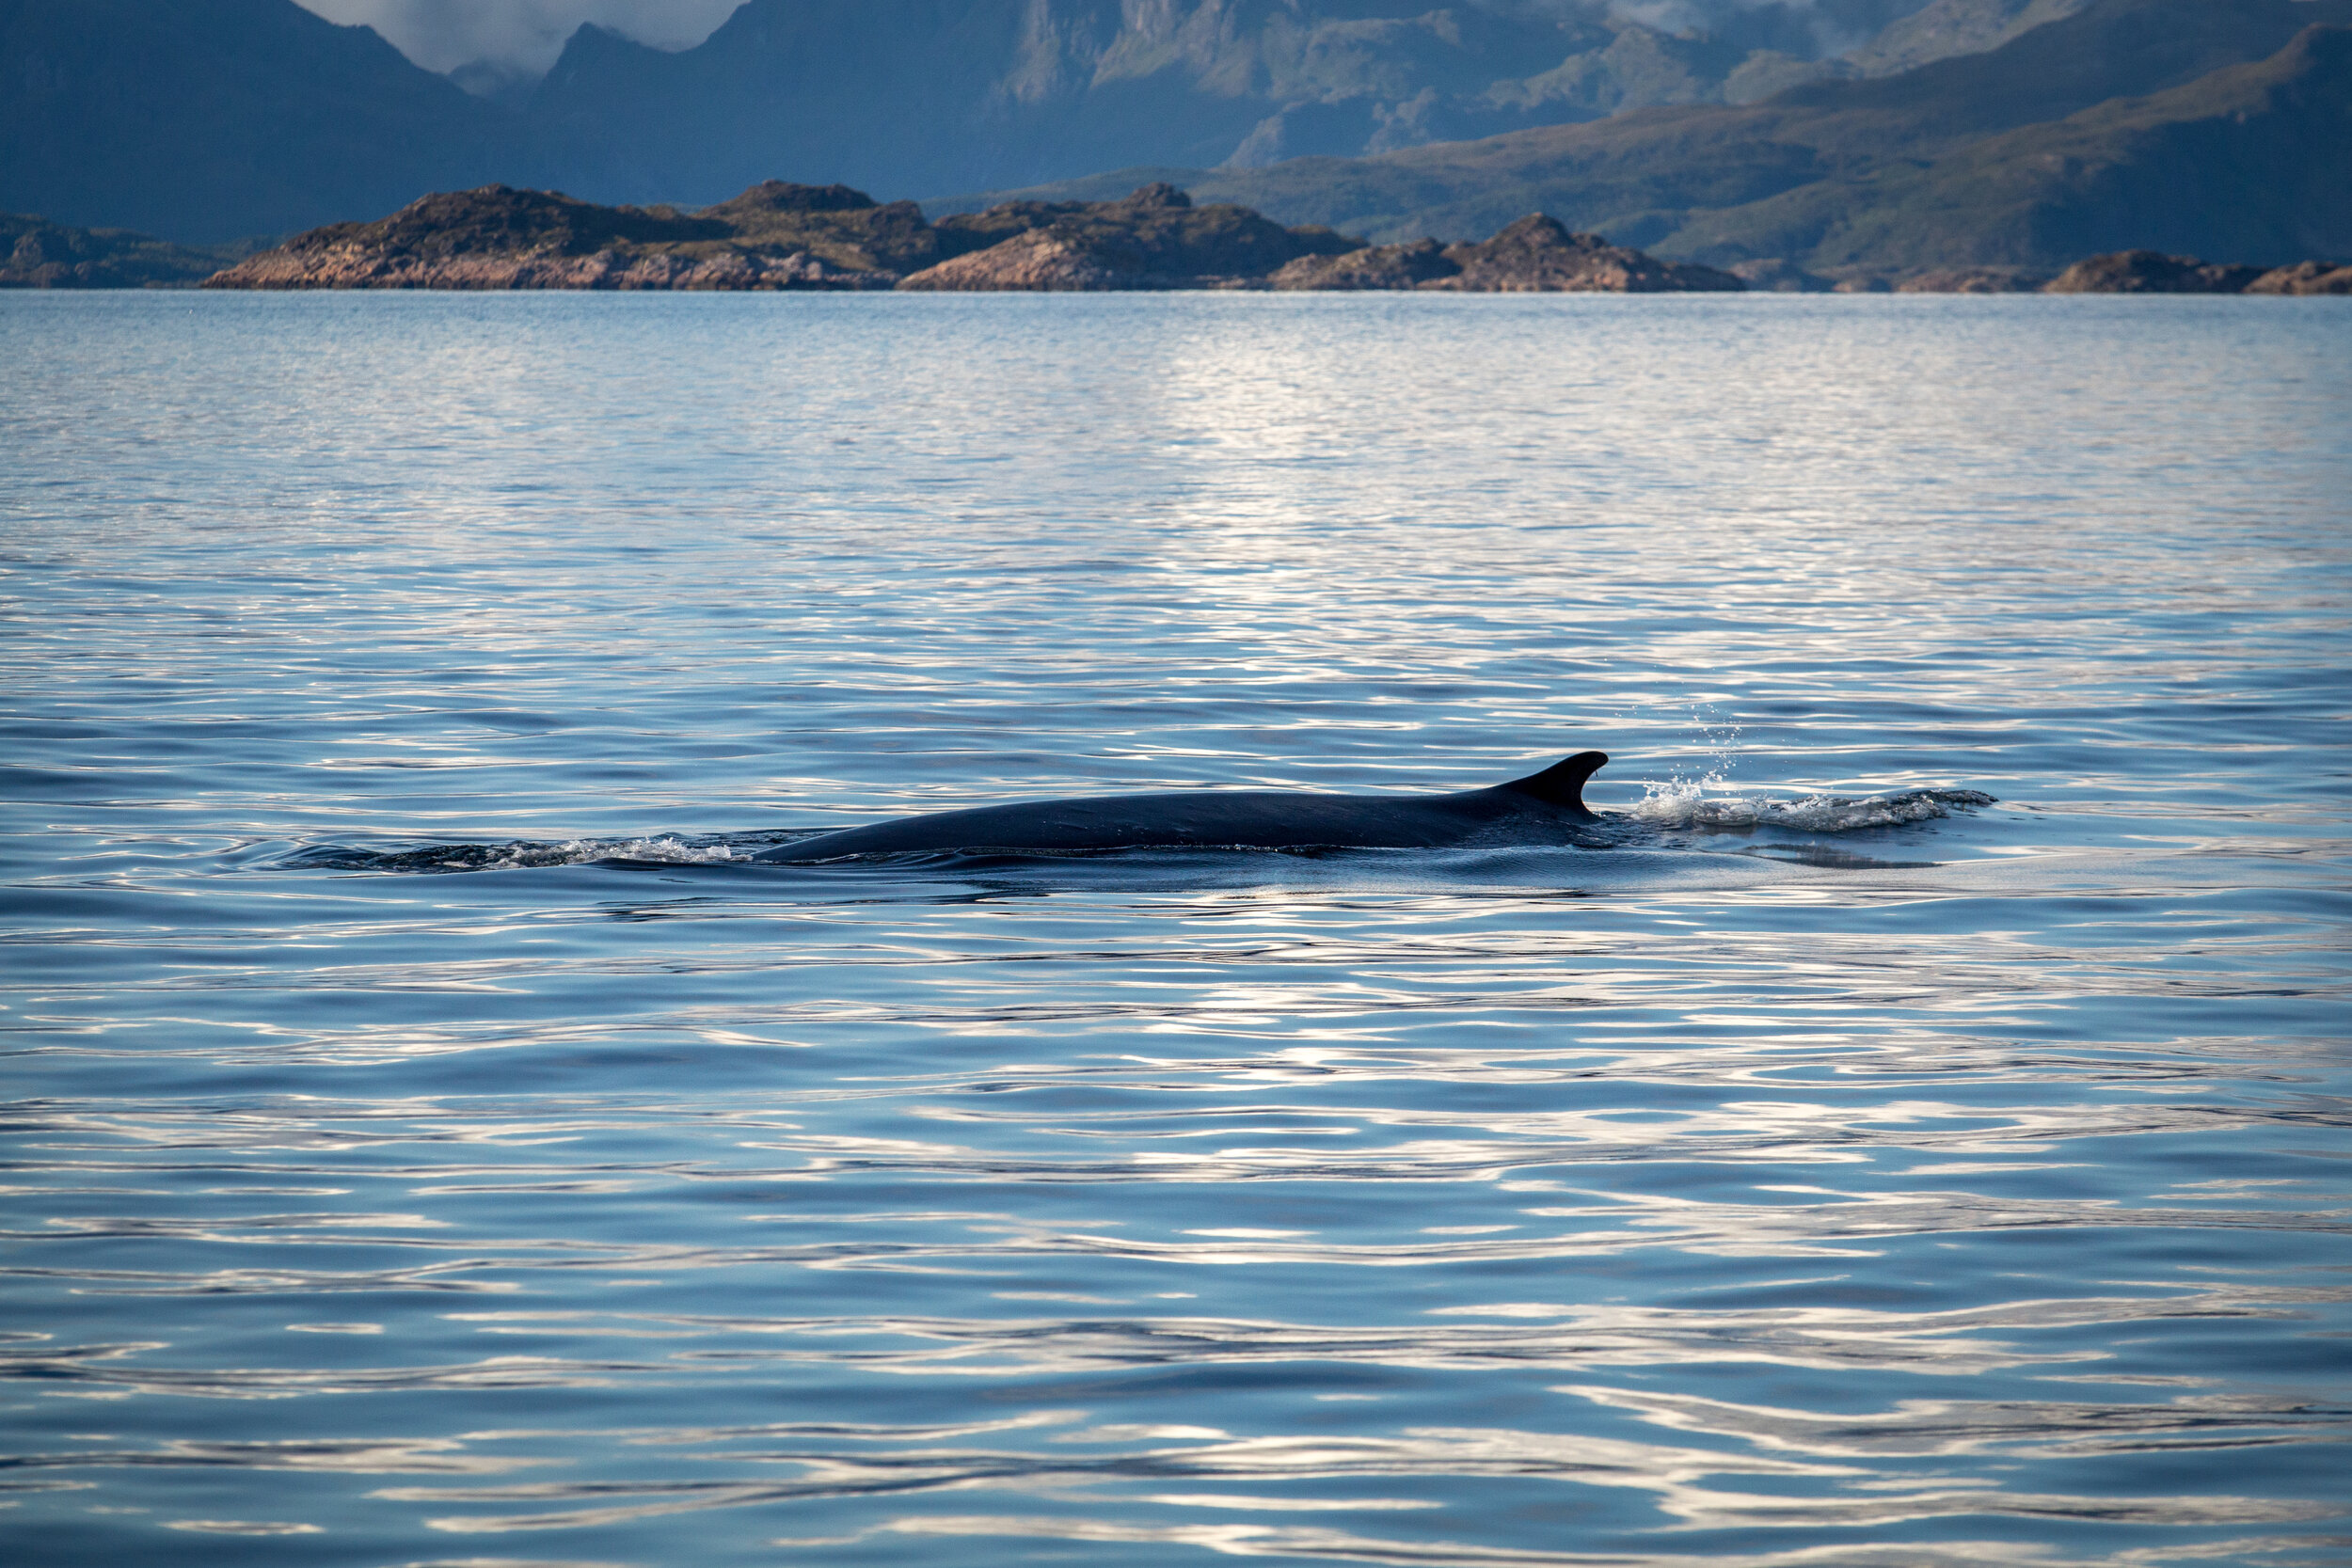 Fin whale surfacing from a dive